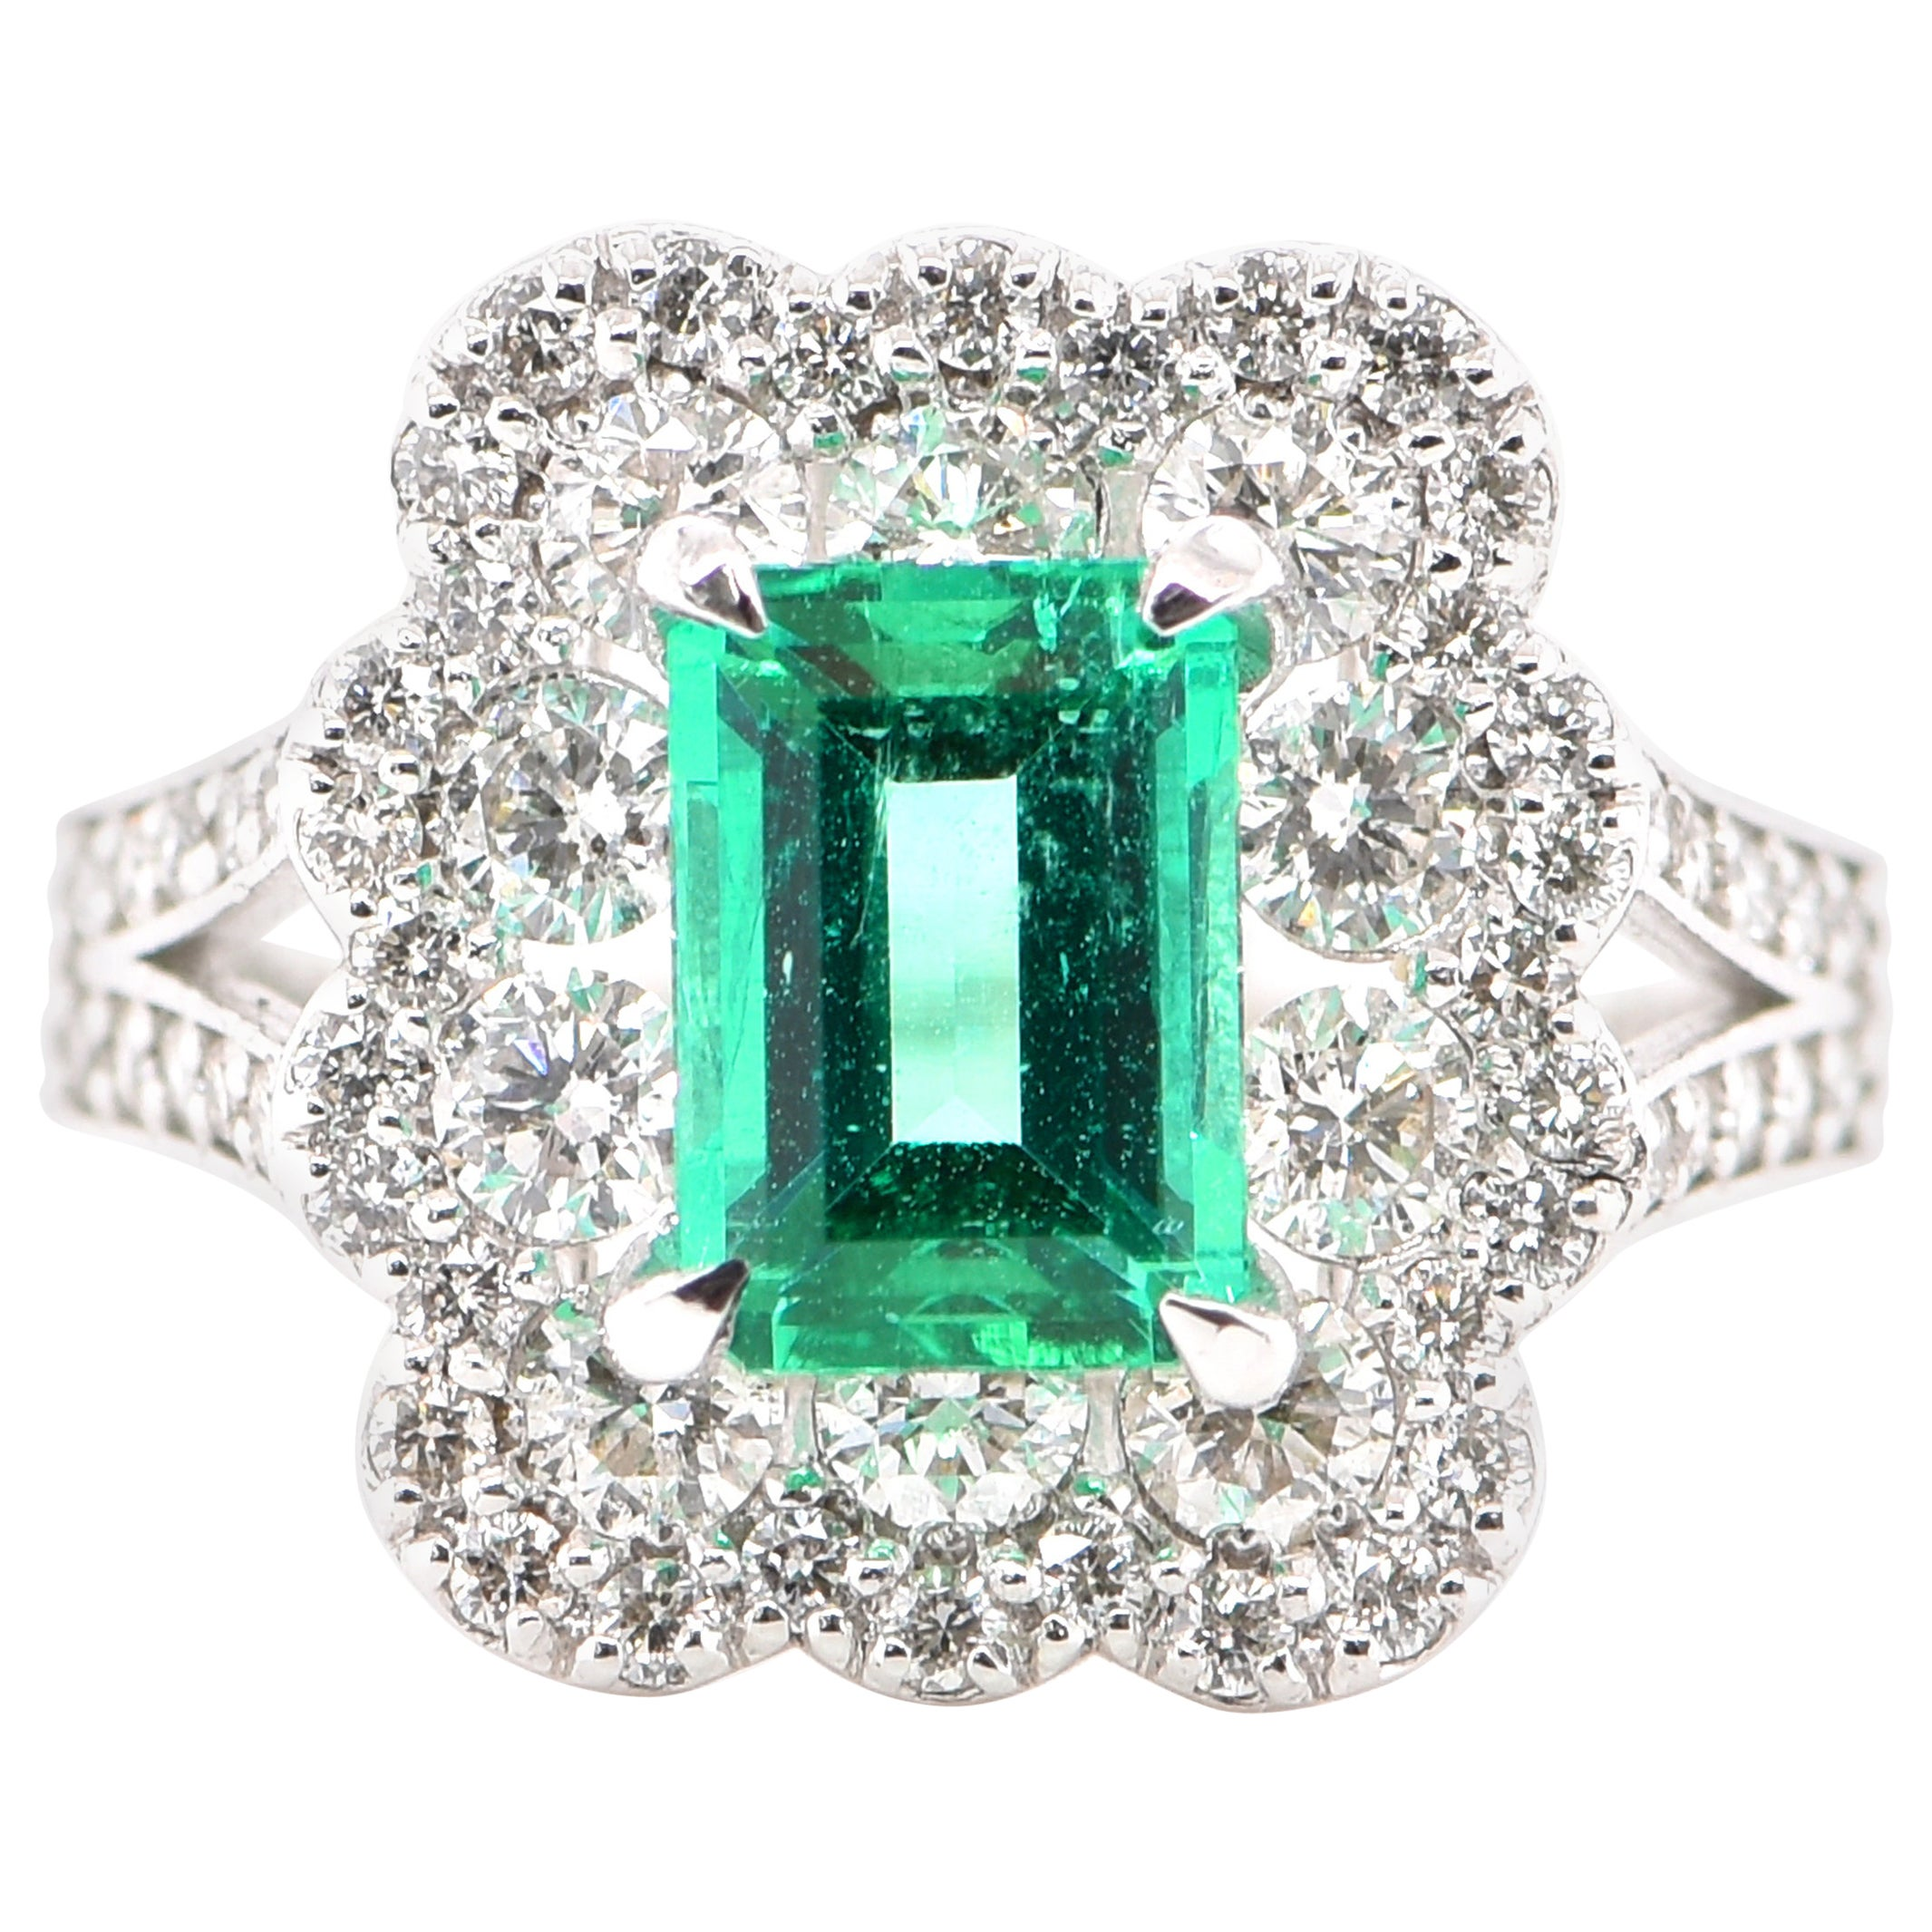 GIA Certified 1.23 Carat Natural, Colombian Emerald Ring Set in Platinum